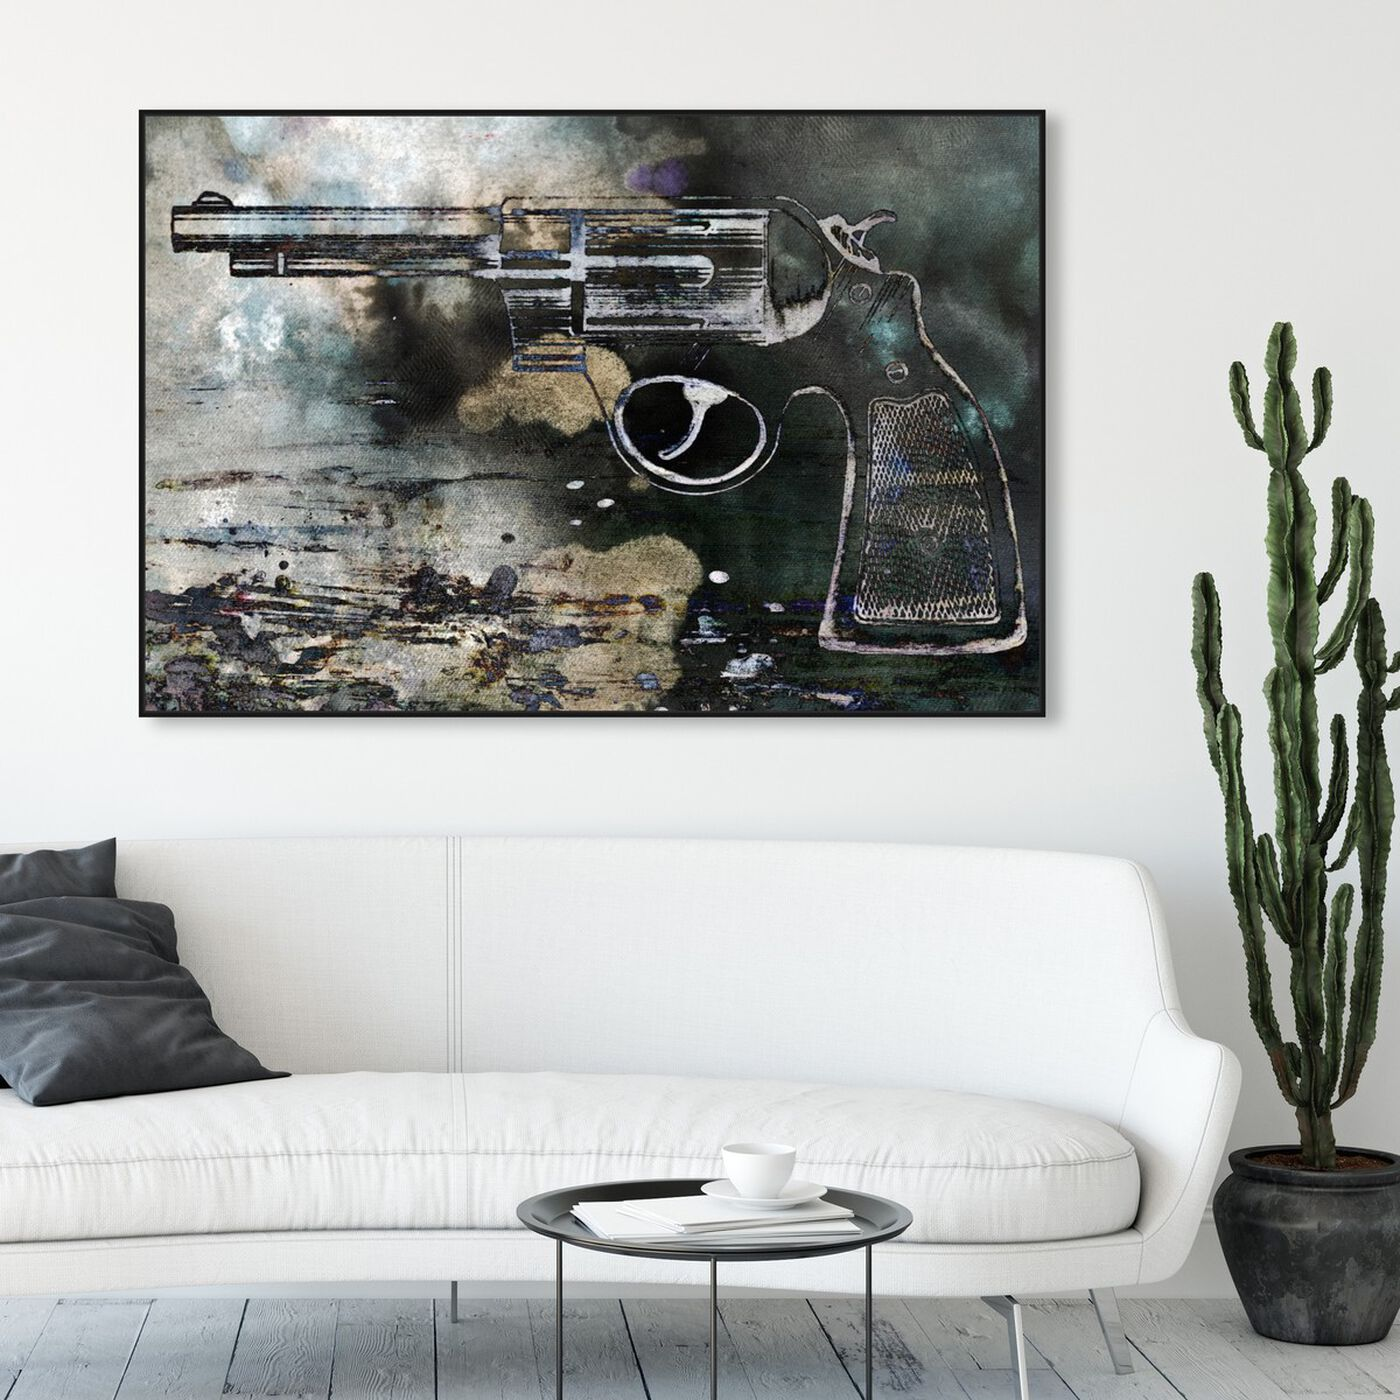 Hanging view of Magnum featuring entertainment and hobbies and machine guns art.